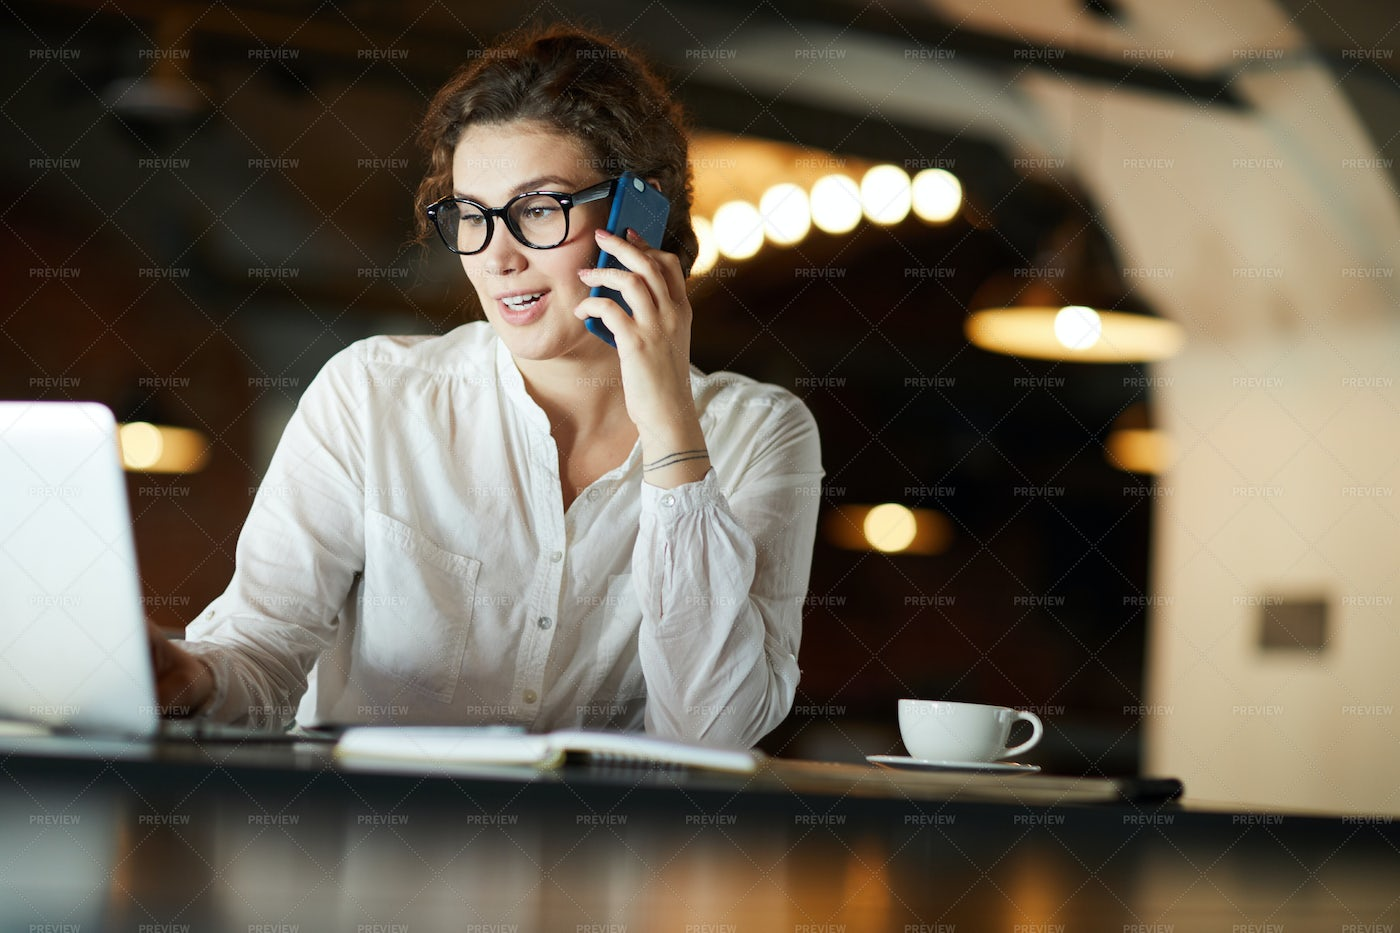 Phoning In Cafe: Stock Photos